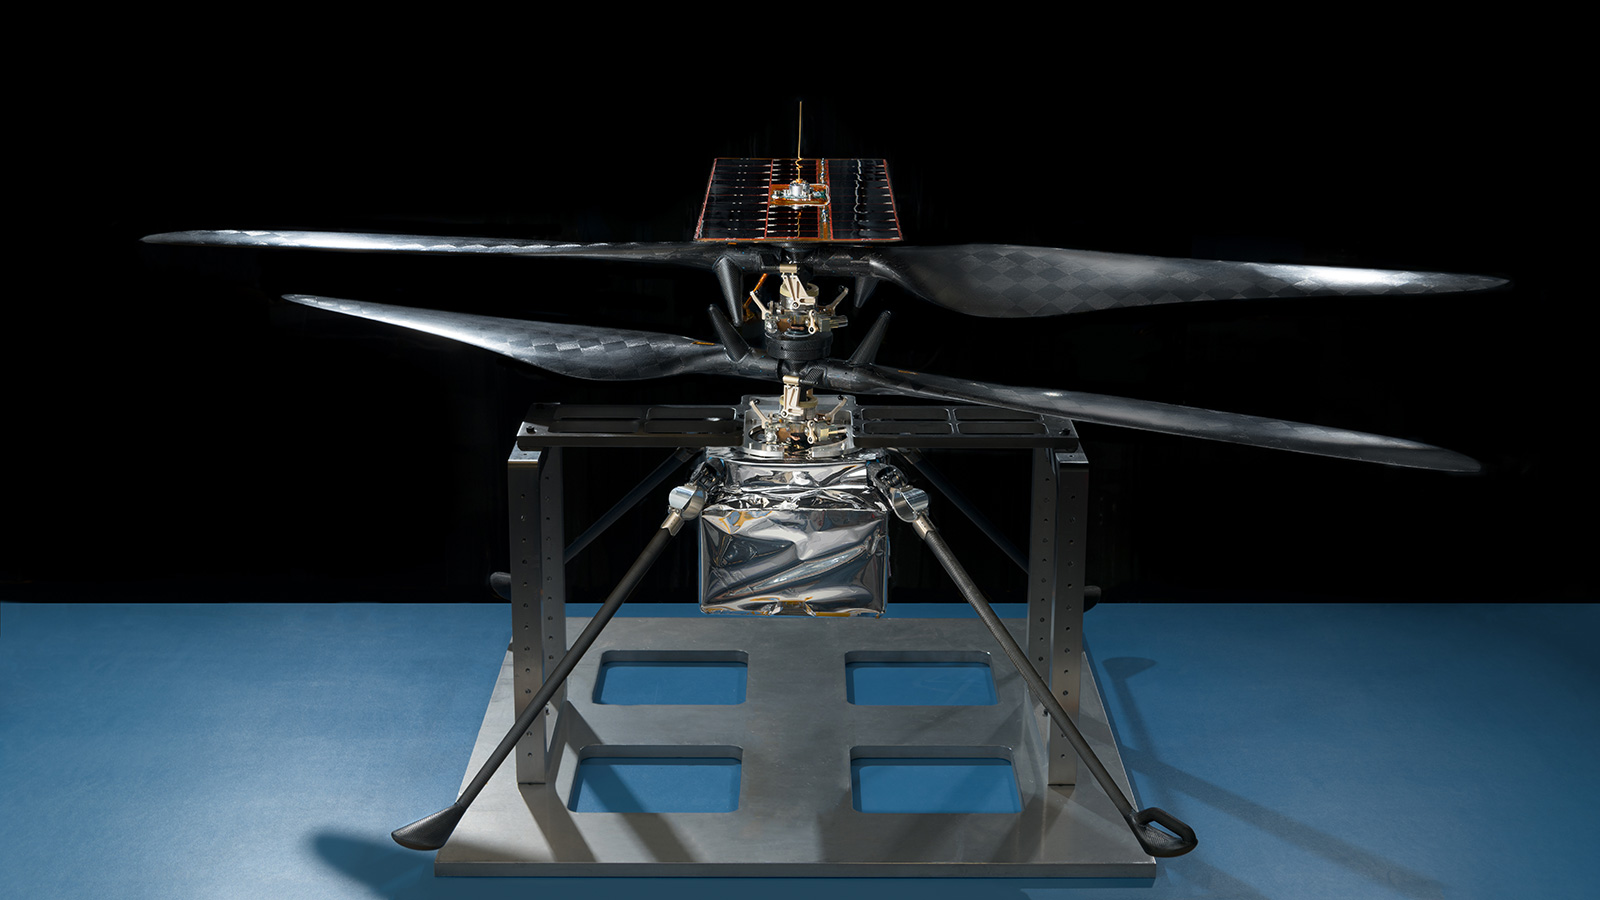 An image of the flight model of NASA's Mars Helicopter.